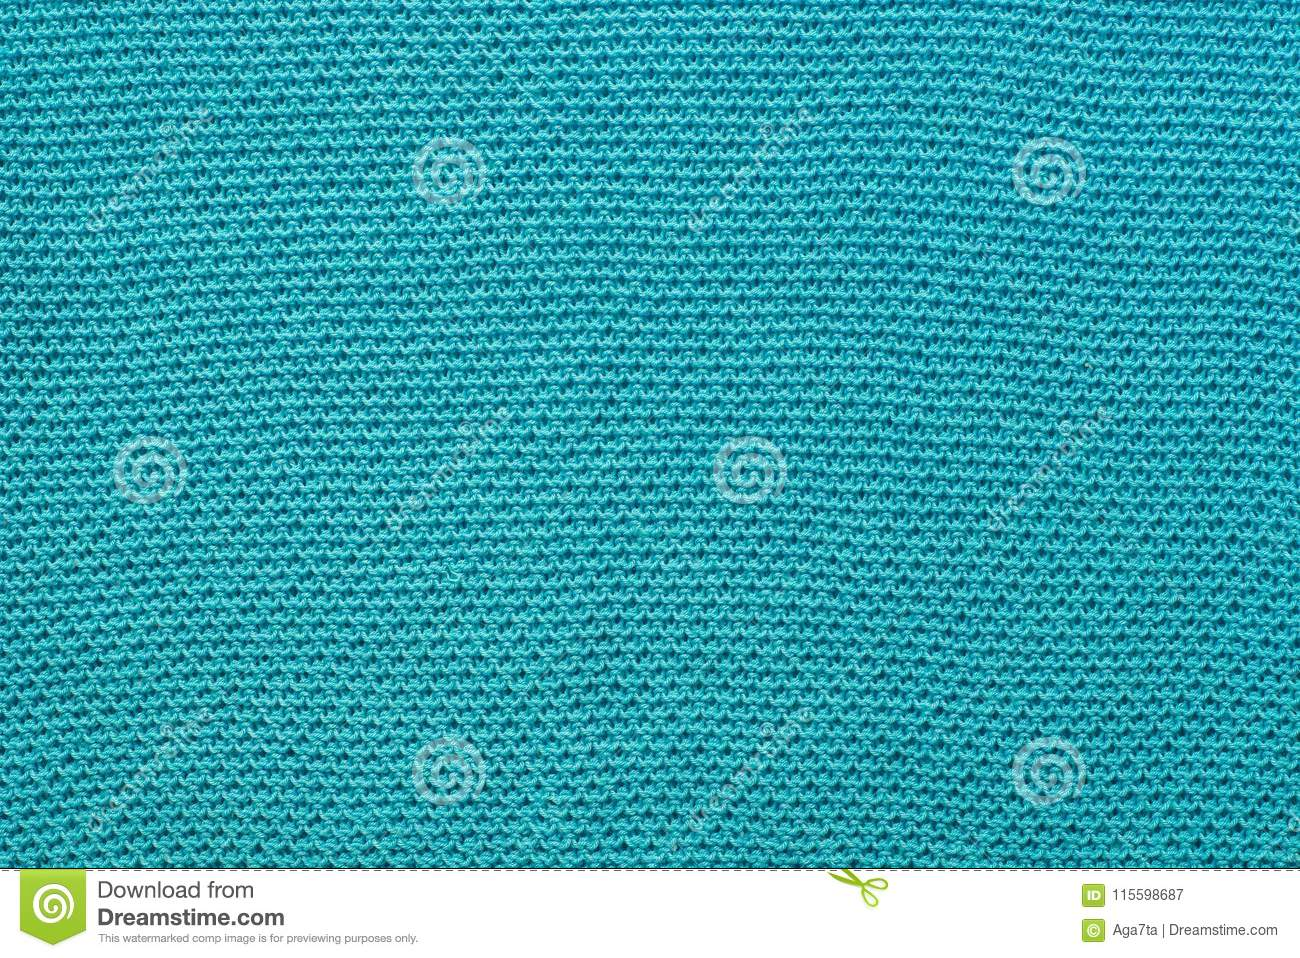 Turquoise Knitwear Cotton Fabric Background Texture Stock Image